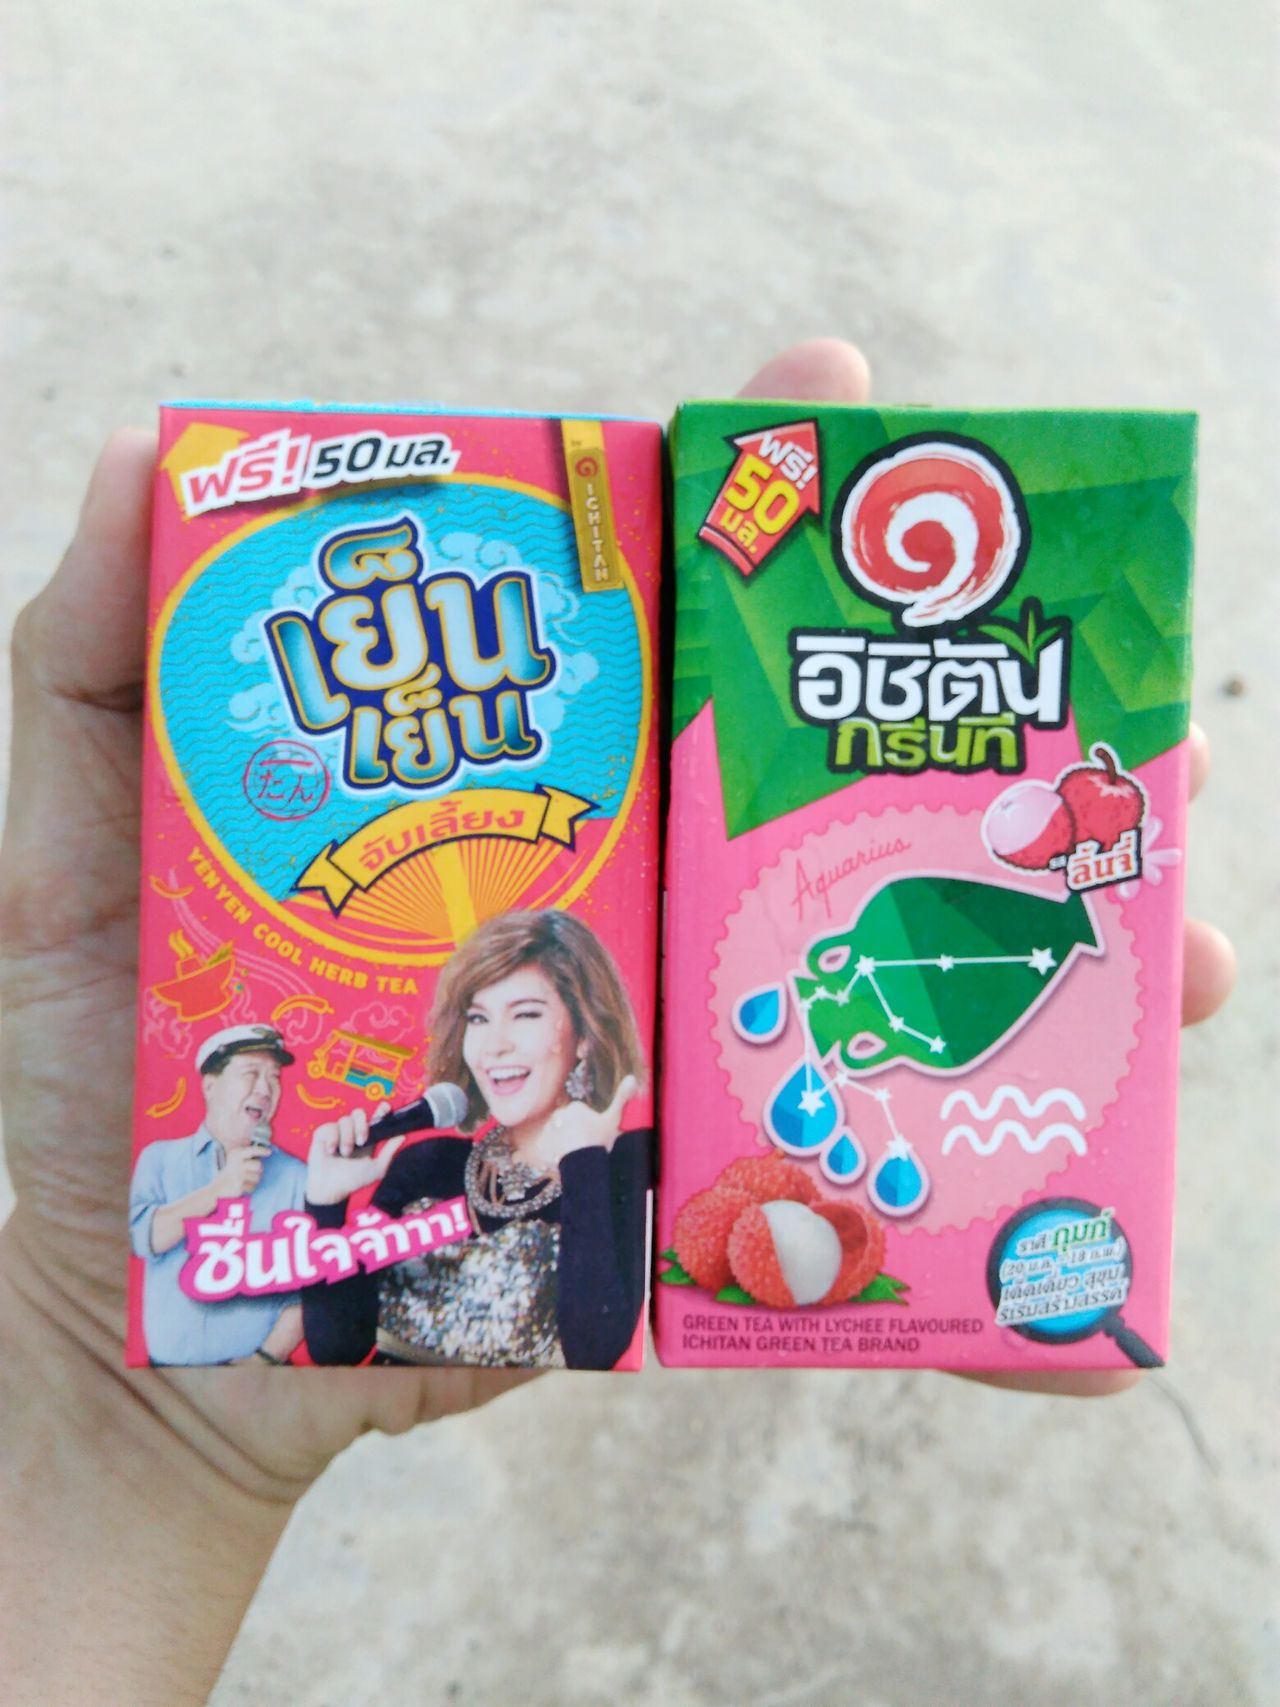 Green tea and herb tea Refreshment Herb Tea Freshness Chon Buri Thailand Drink Uht Cool Handheld Package Graphic Tea Time Flavour Ready To Drink Fruit Flavored Drinks Green Tea Ichitan Sweet